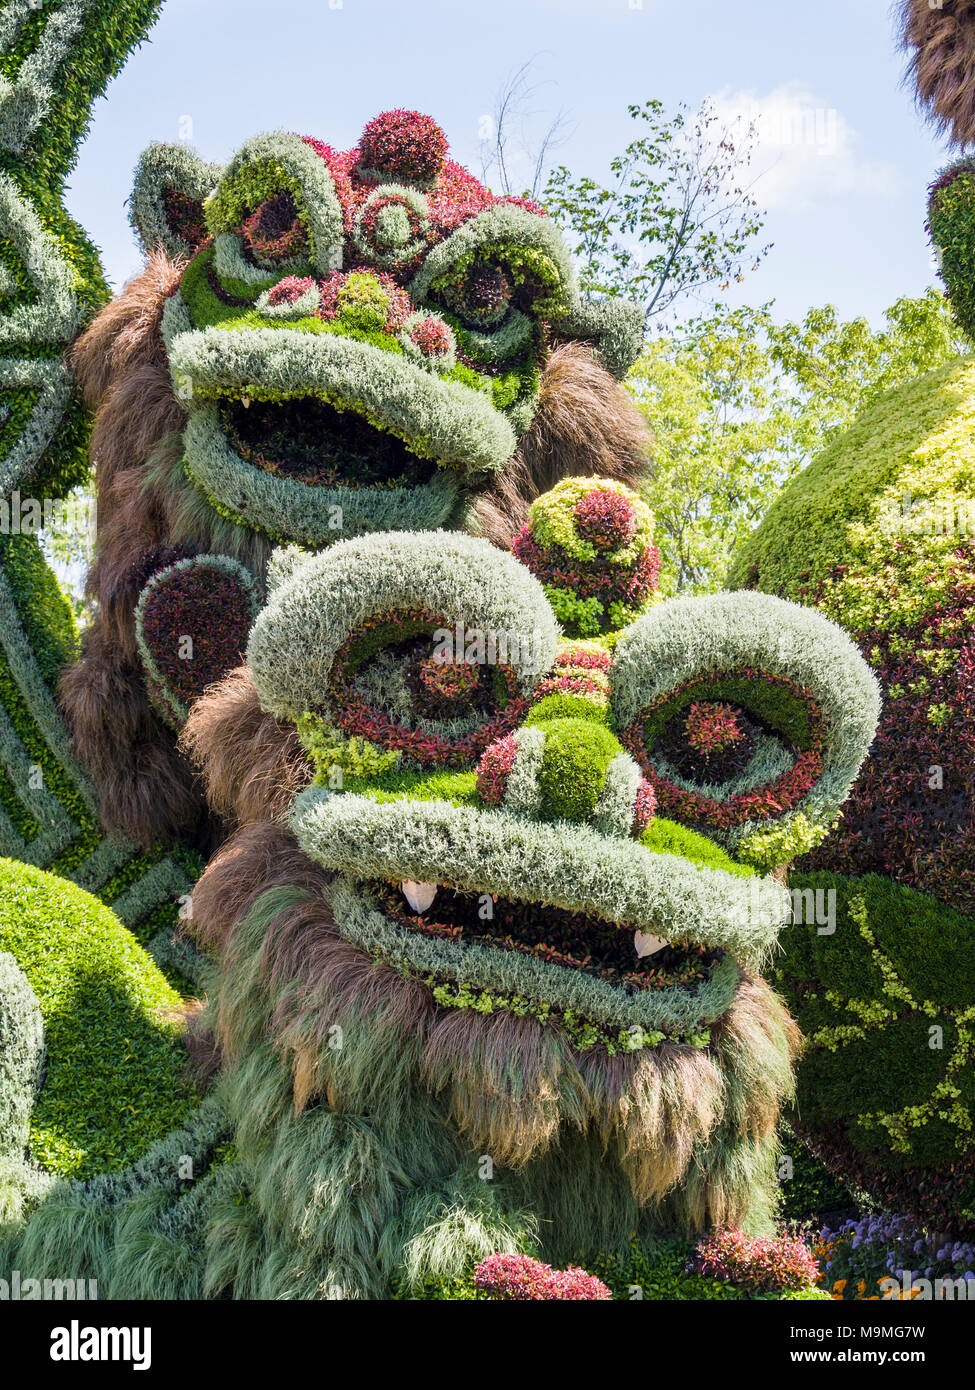 Chinese dragon heads plant sculpture: A huge plant-based sculpture of a pair of chinese mythical dragons formed from a multitude of colourful plants at MosaiCanada 150. - Stock Image